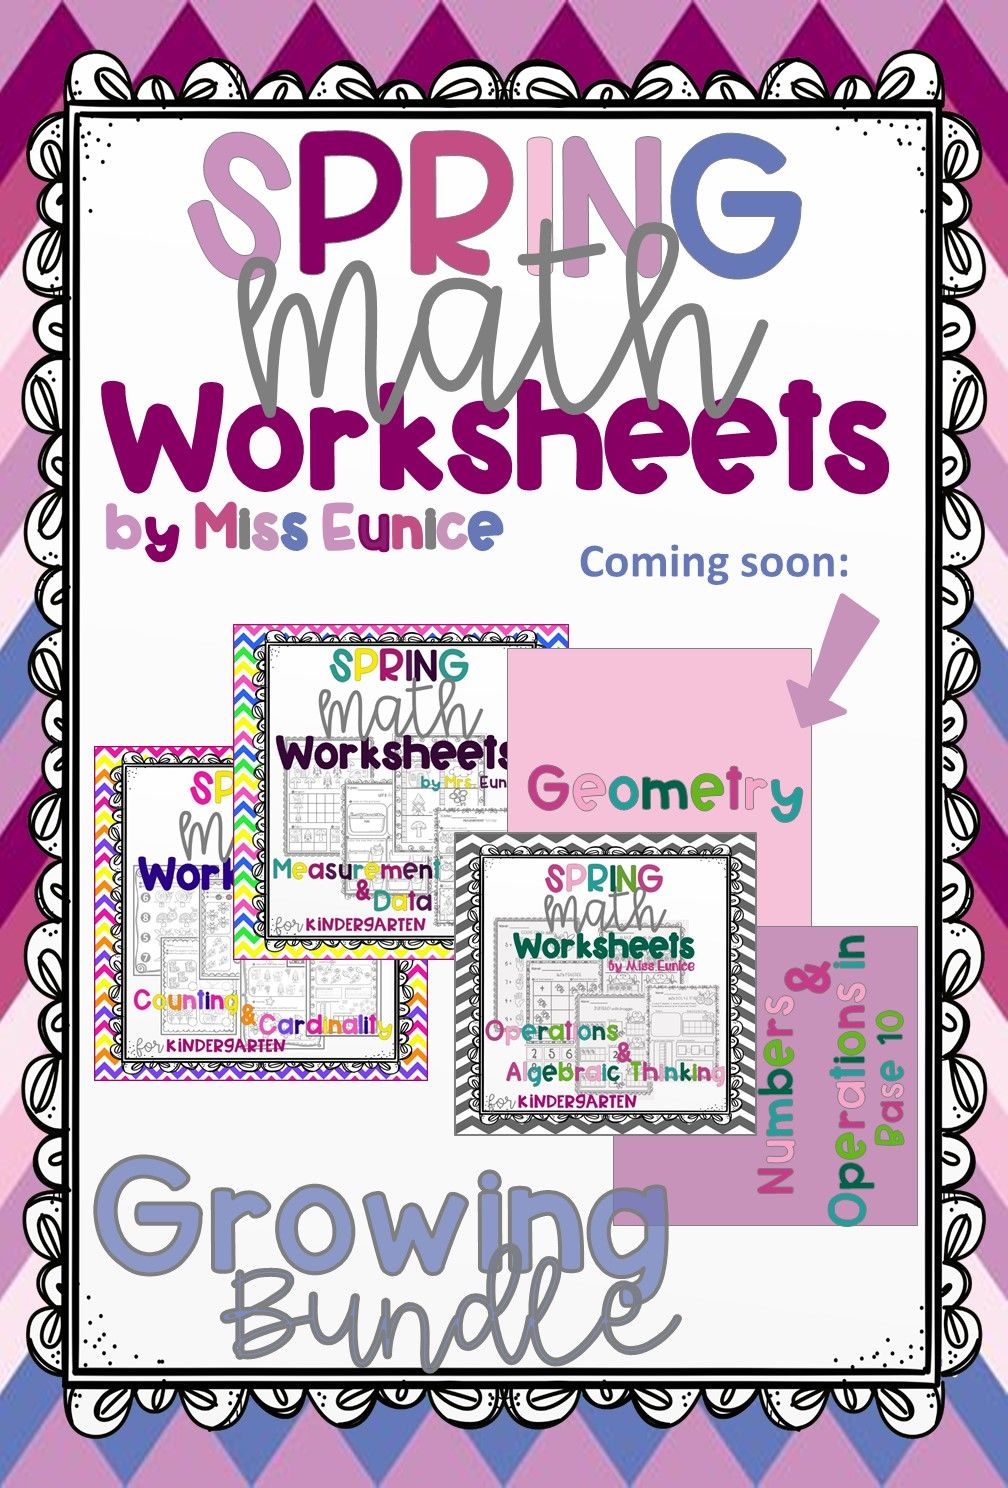 Spring Math Worksheets Addition And Subtraction Spring Math Worksheets Math Worksheets Addition And Subtraction [ 1488 x 1008 Pixel ]